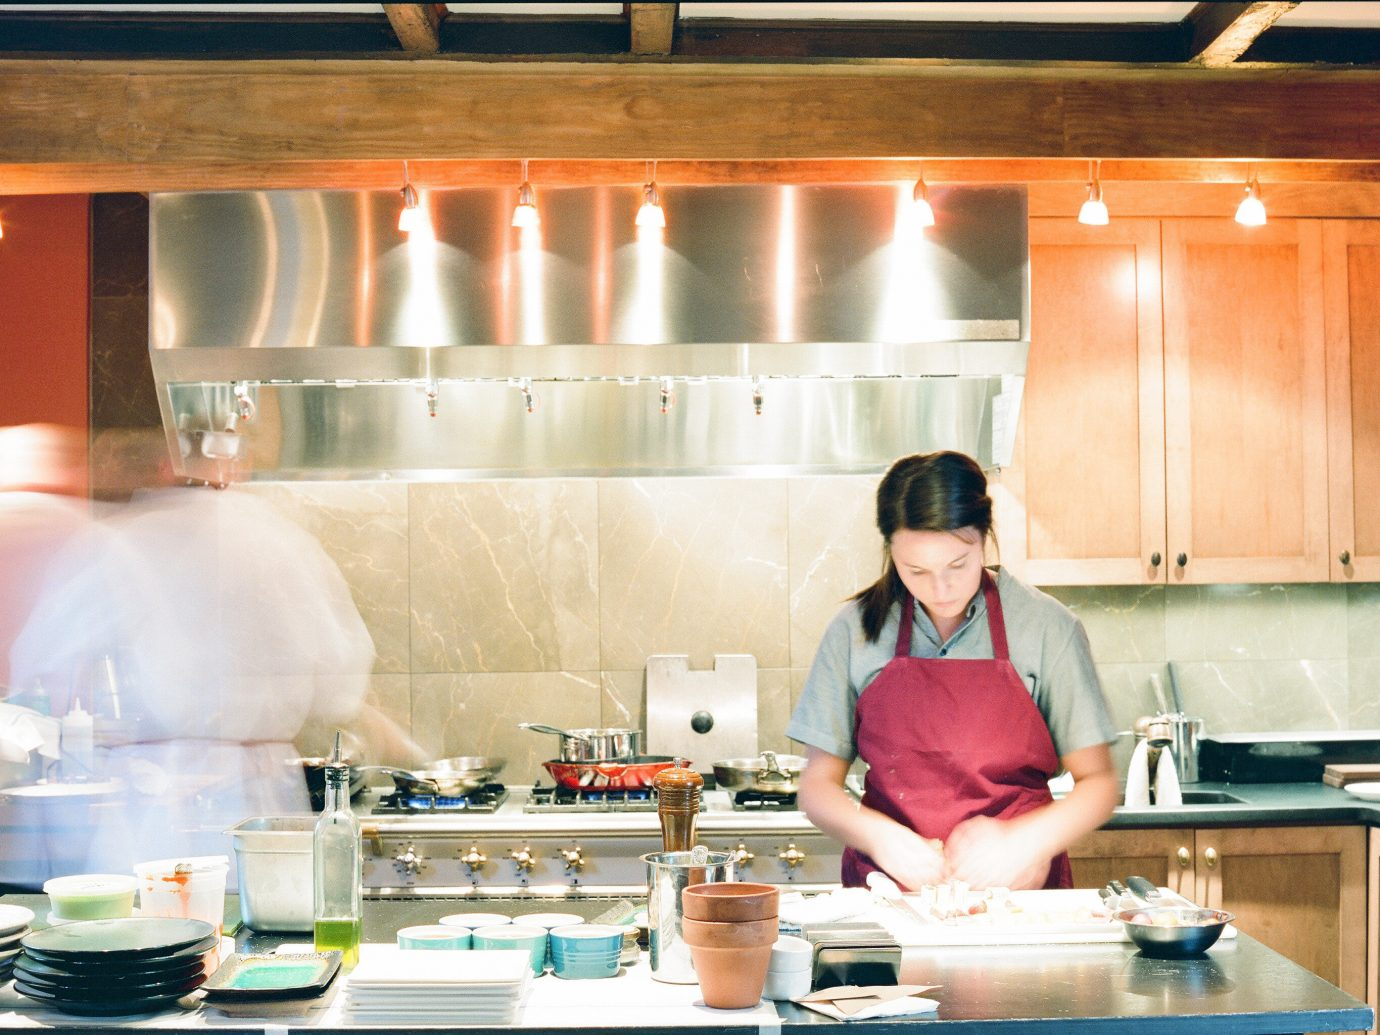 Food + Drink Kitchen indoor person preparing counter meal professional restaurant dish cooking cuisine food cook lunch kitchen appliance